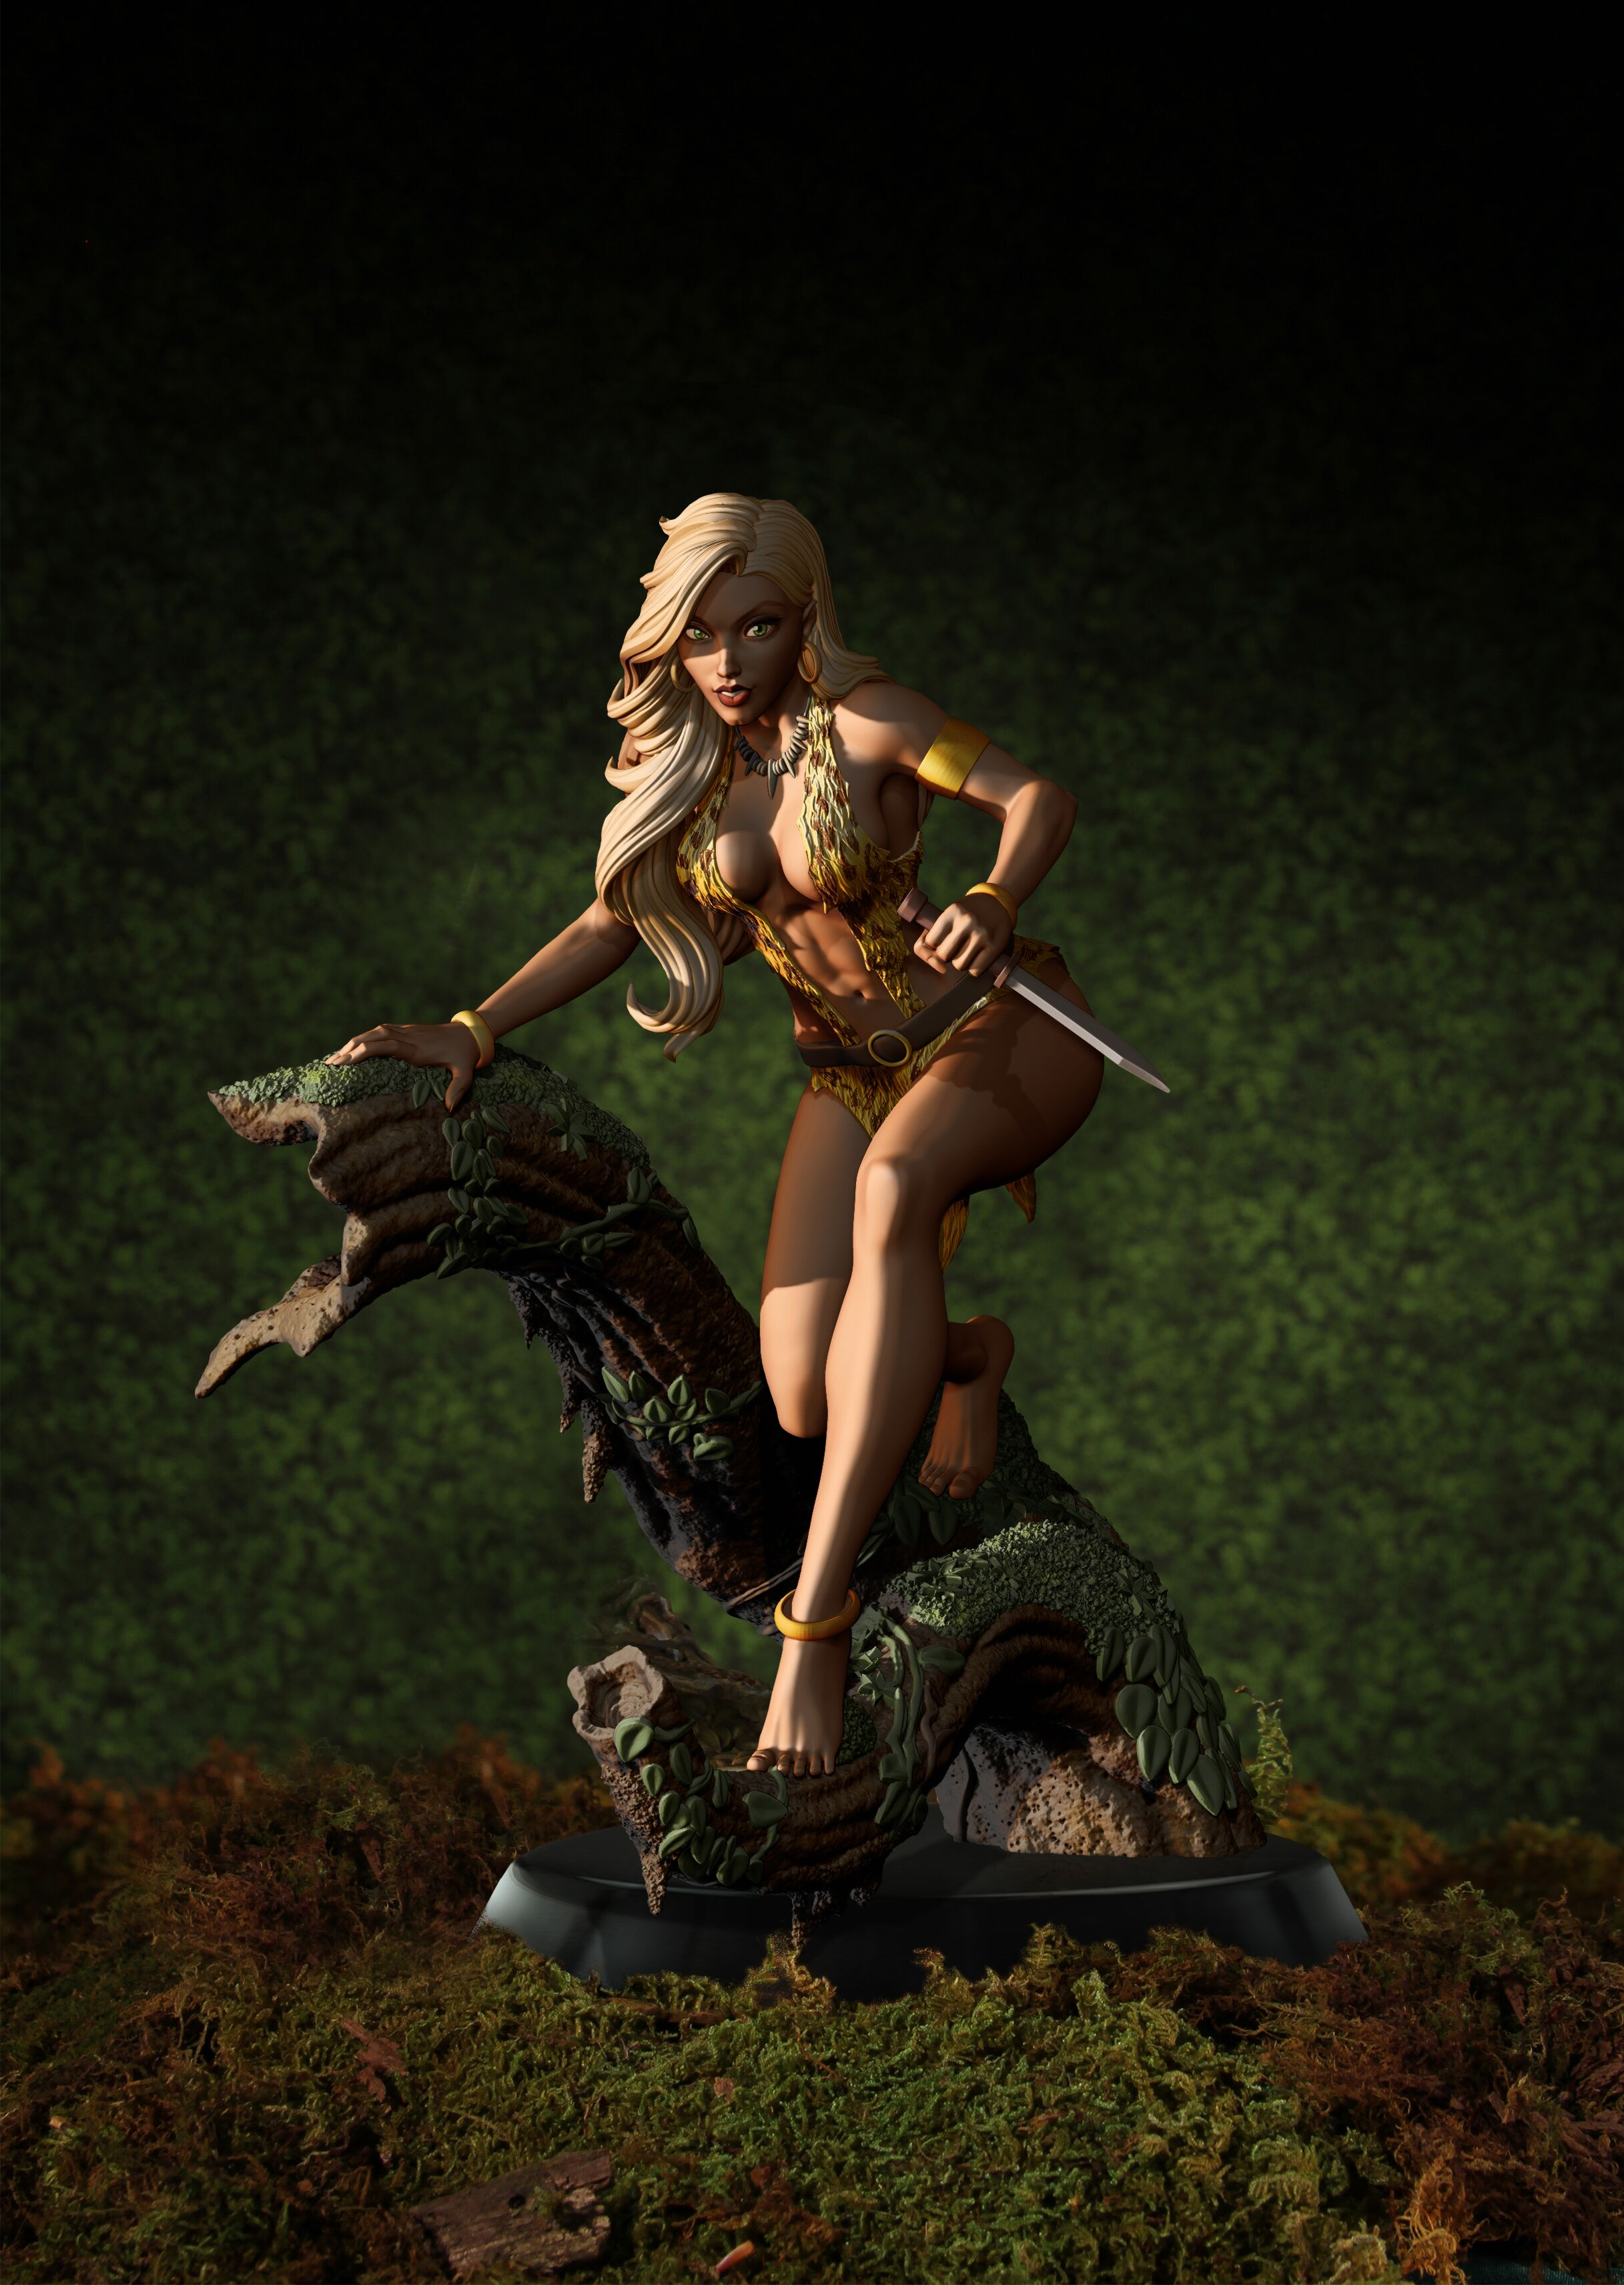 Pre-Order Dynamite Sheena Queen of The Jungle Statue